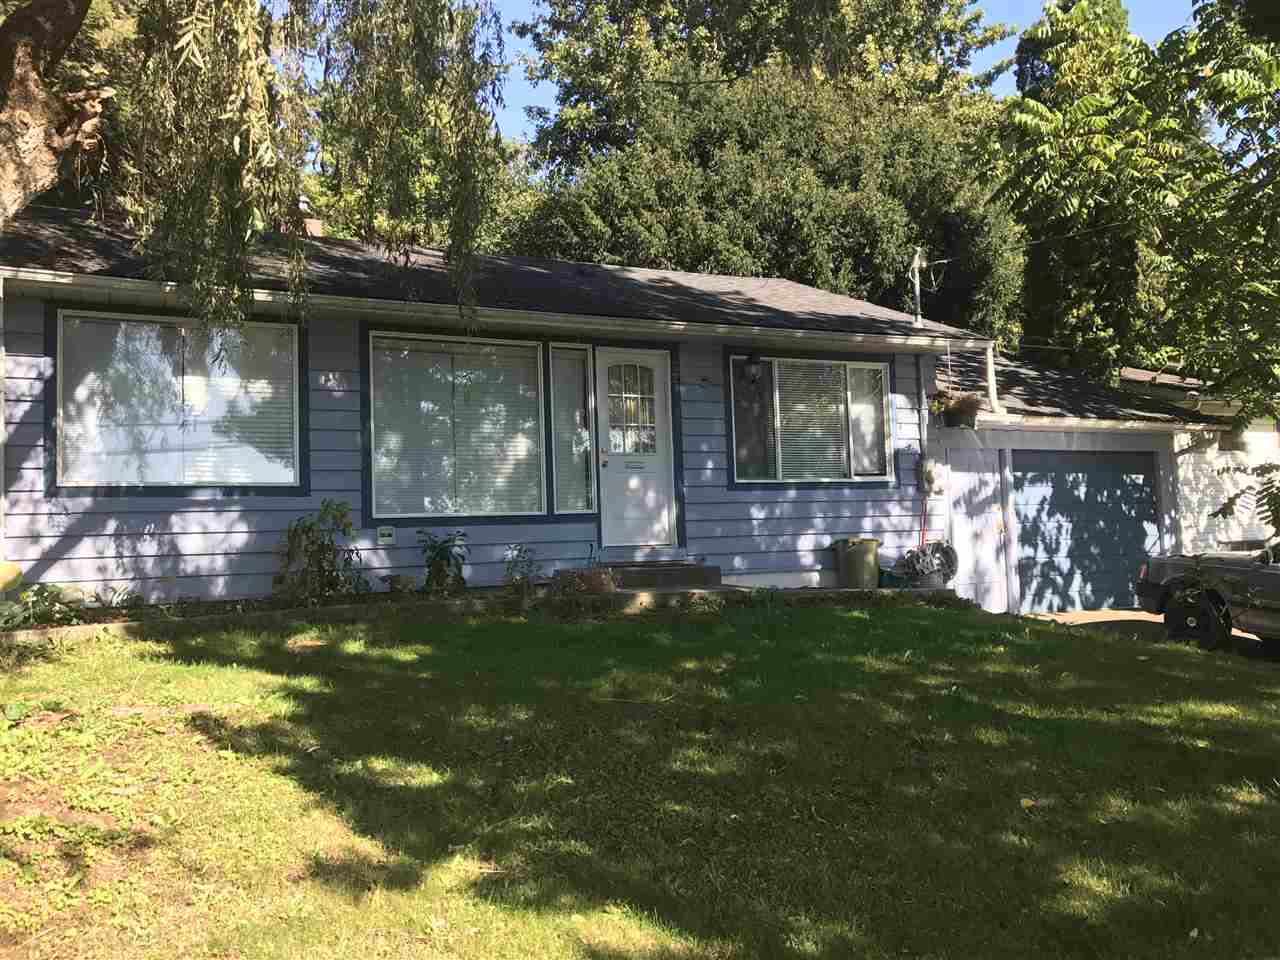 First time buyer or investor alert!!!!!!Great starter home. Your chance to get into the market. Also a great potential to build up your rental portfolio. Good lay out 2 bedroom up and 2 bedroom down, with an additional rec-room in the basement. Good size fenced backyard. Private garage along with an additional workshop. Hurry wont last long...........Open House  Saturday and Sunday .2:00 to 4:00 Pm .SOLD...